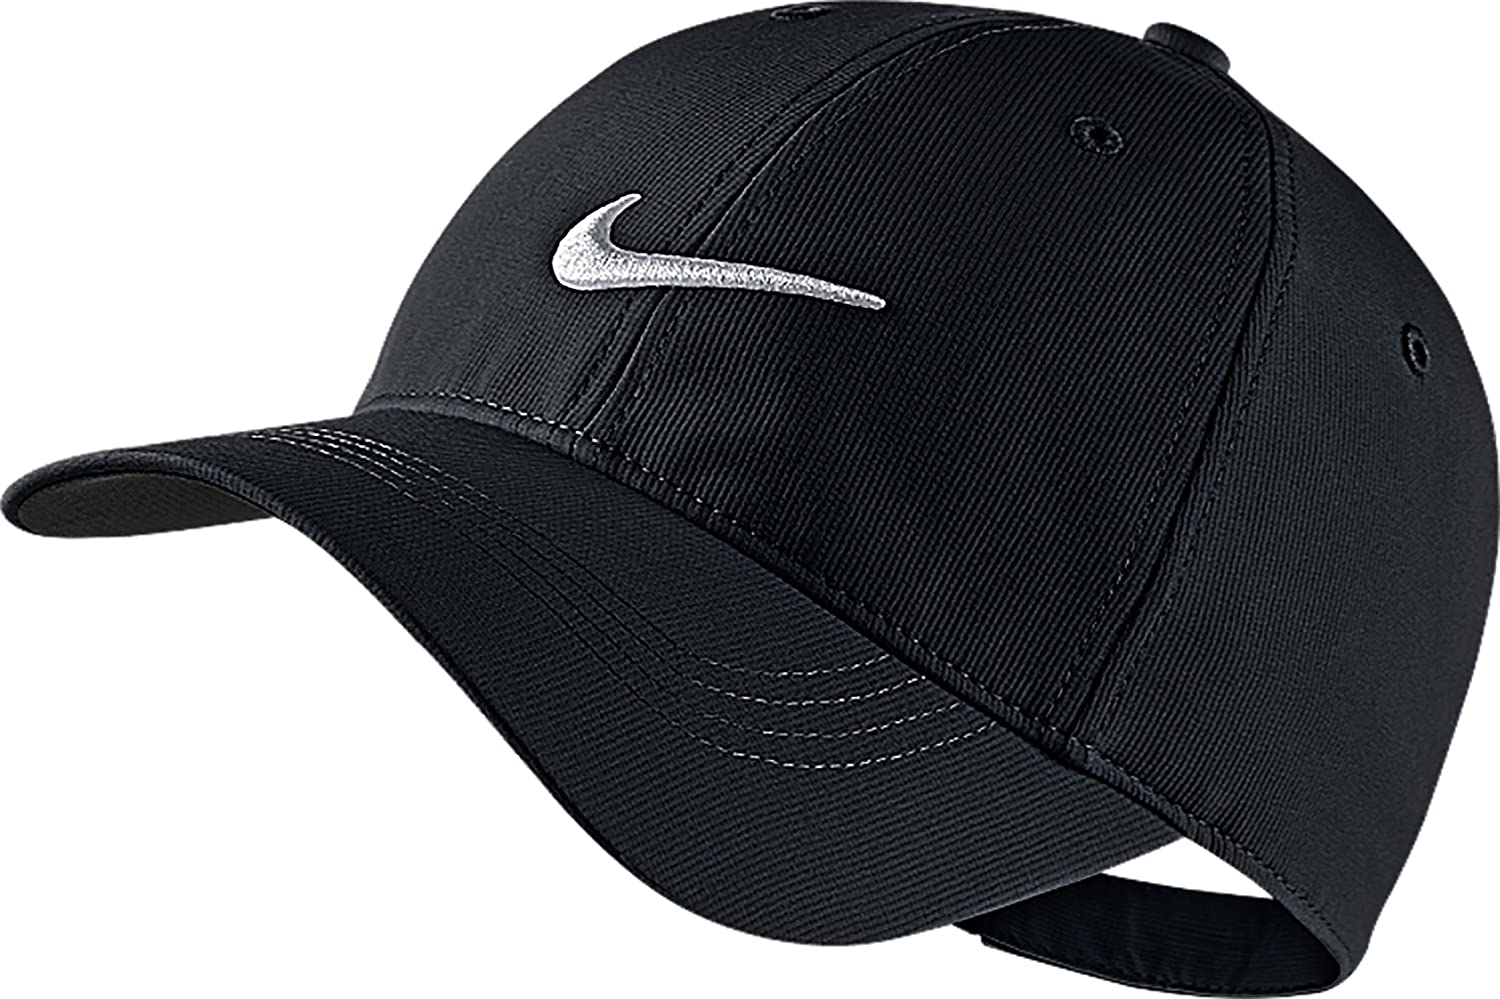 Buy Nike Mens Golf Legacy91 Tech Adjustable Hat Black White 727042-010  Online at Low Prices in India - Amazon.in fb7fc21b9d26